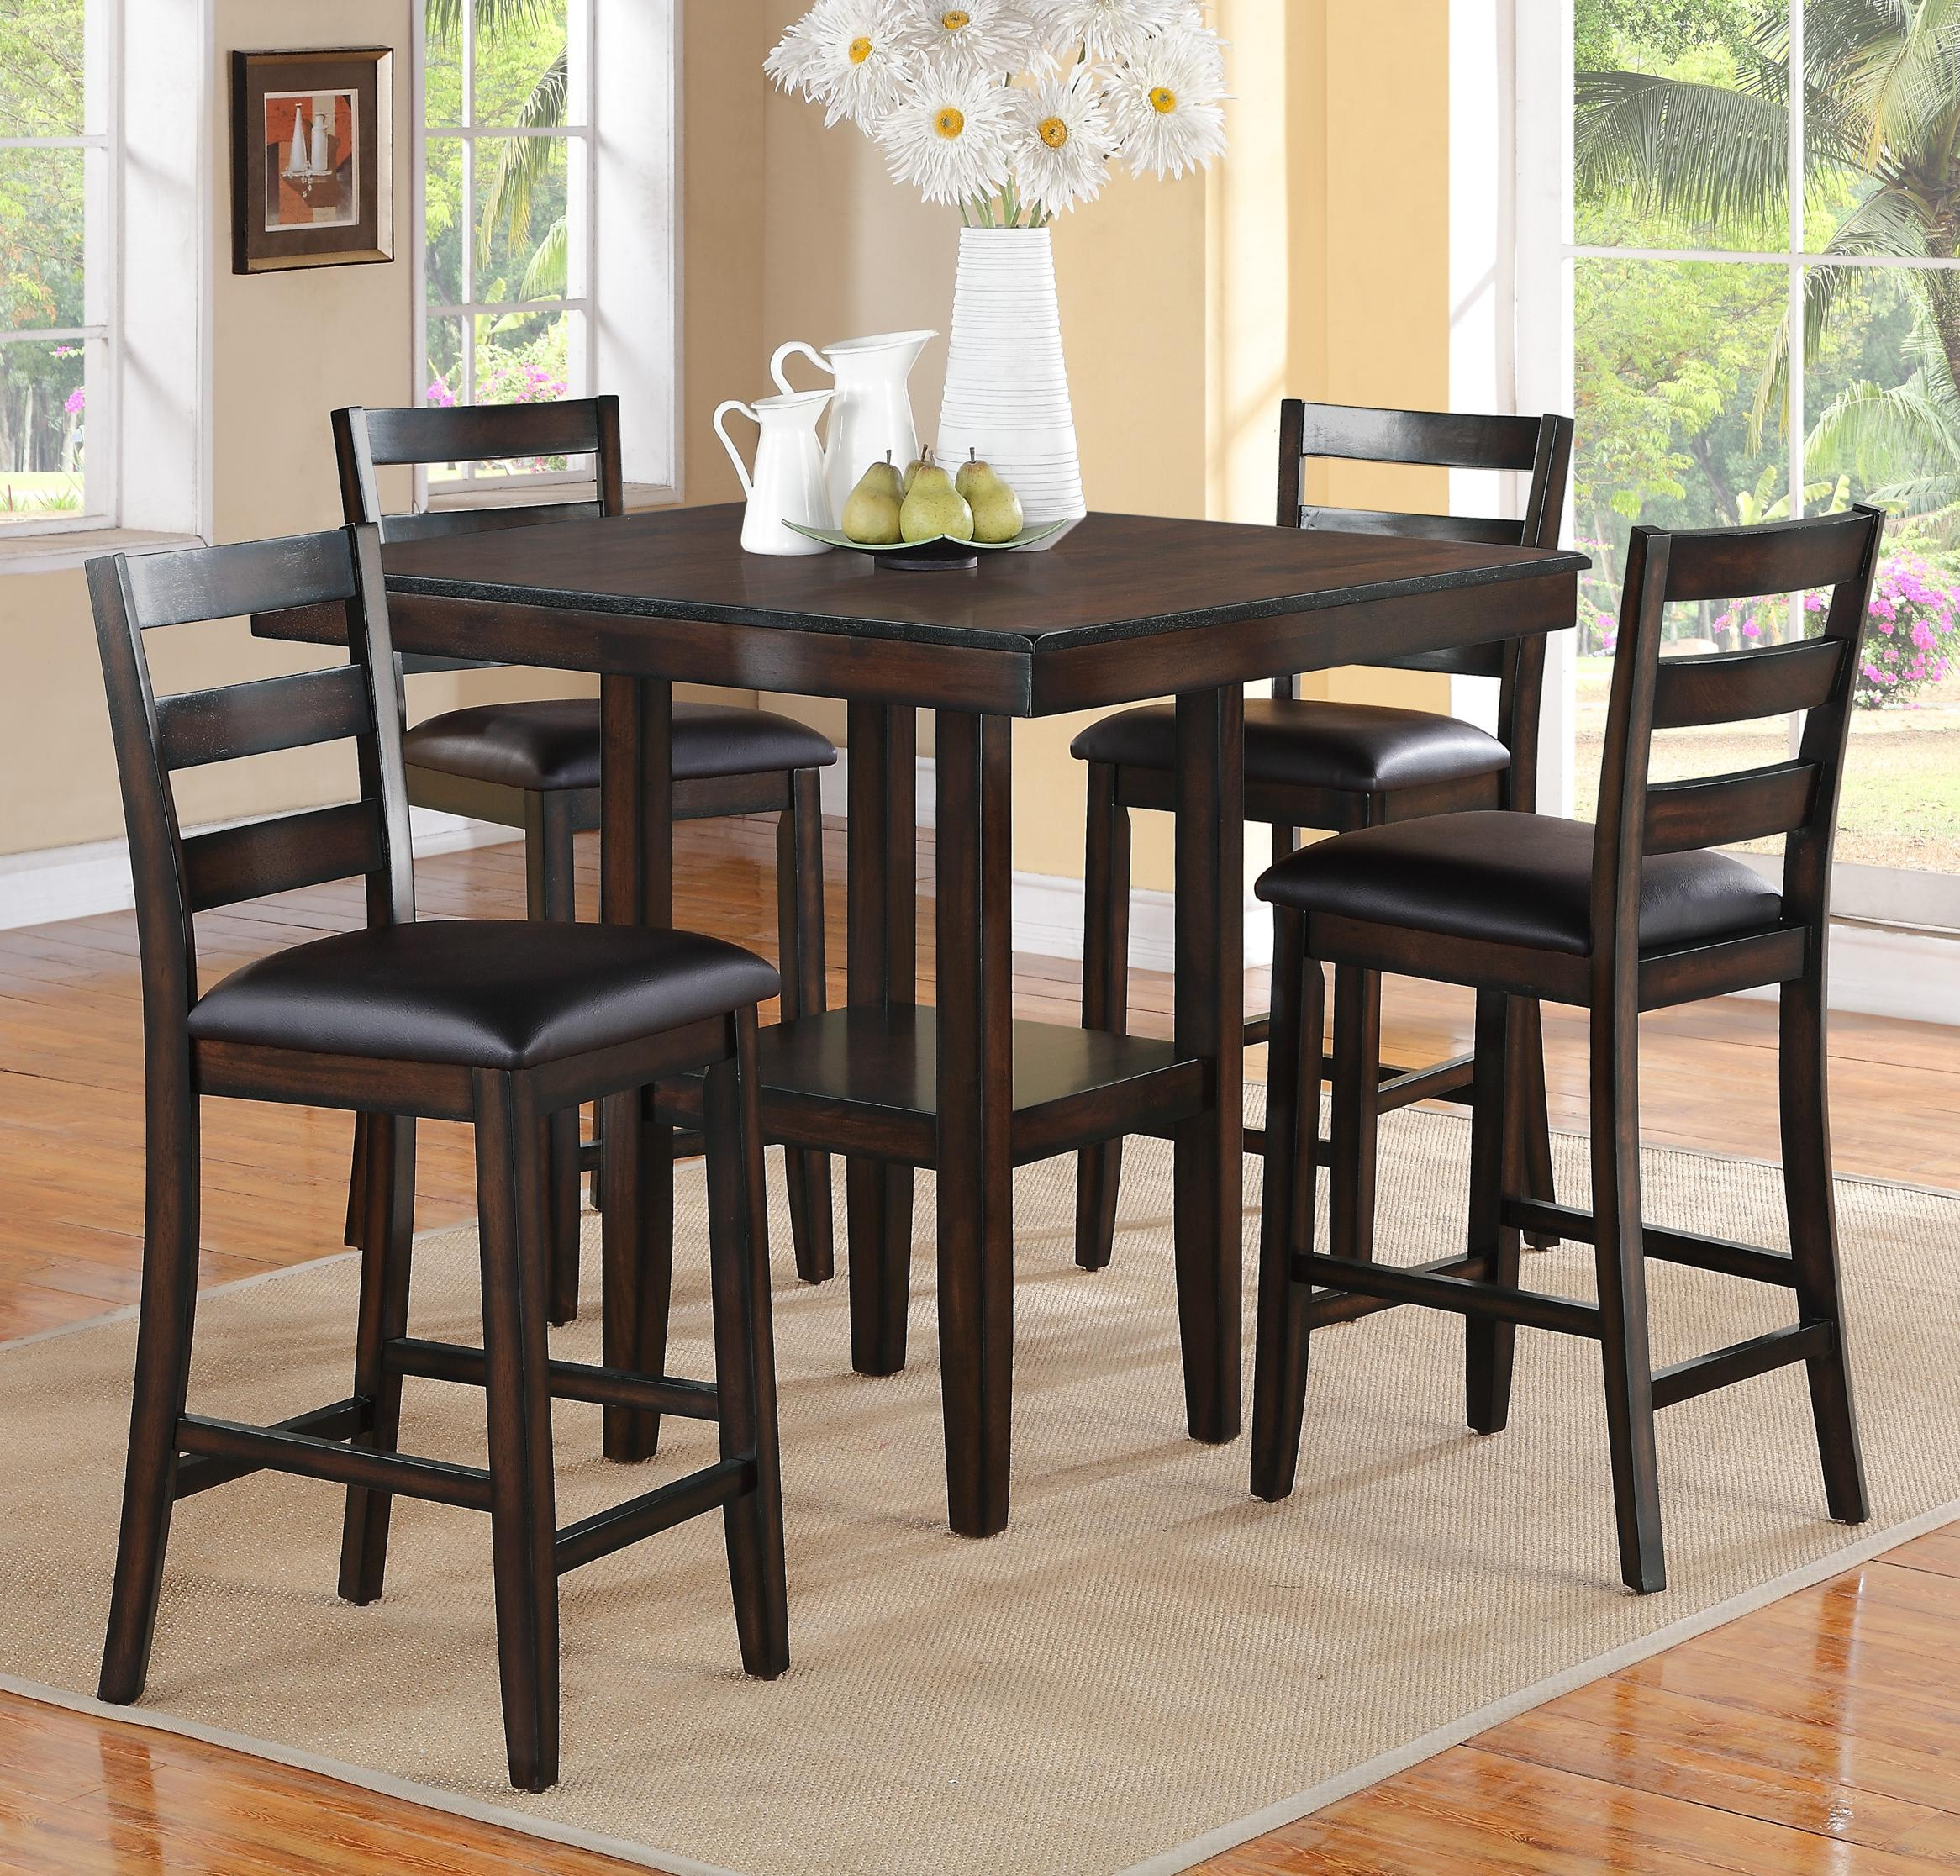 crown mark tahoe 2630set 5 piece counter height table and chairs set furniture superstore nm. Black Bedroom Furniture Sets. Home Design Ideas